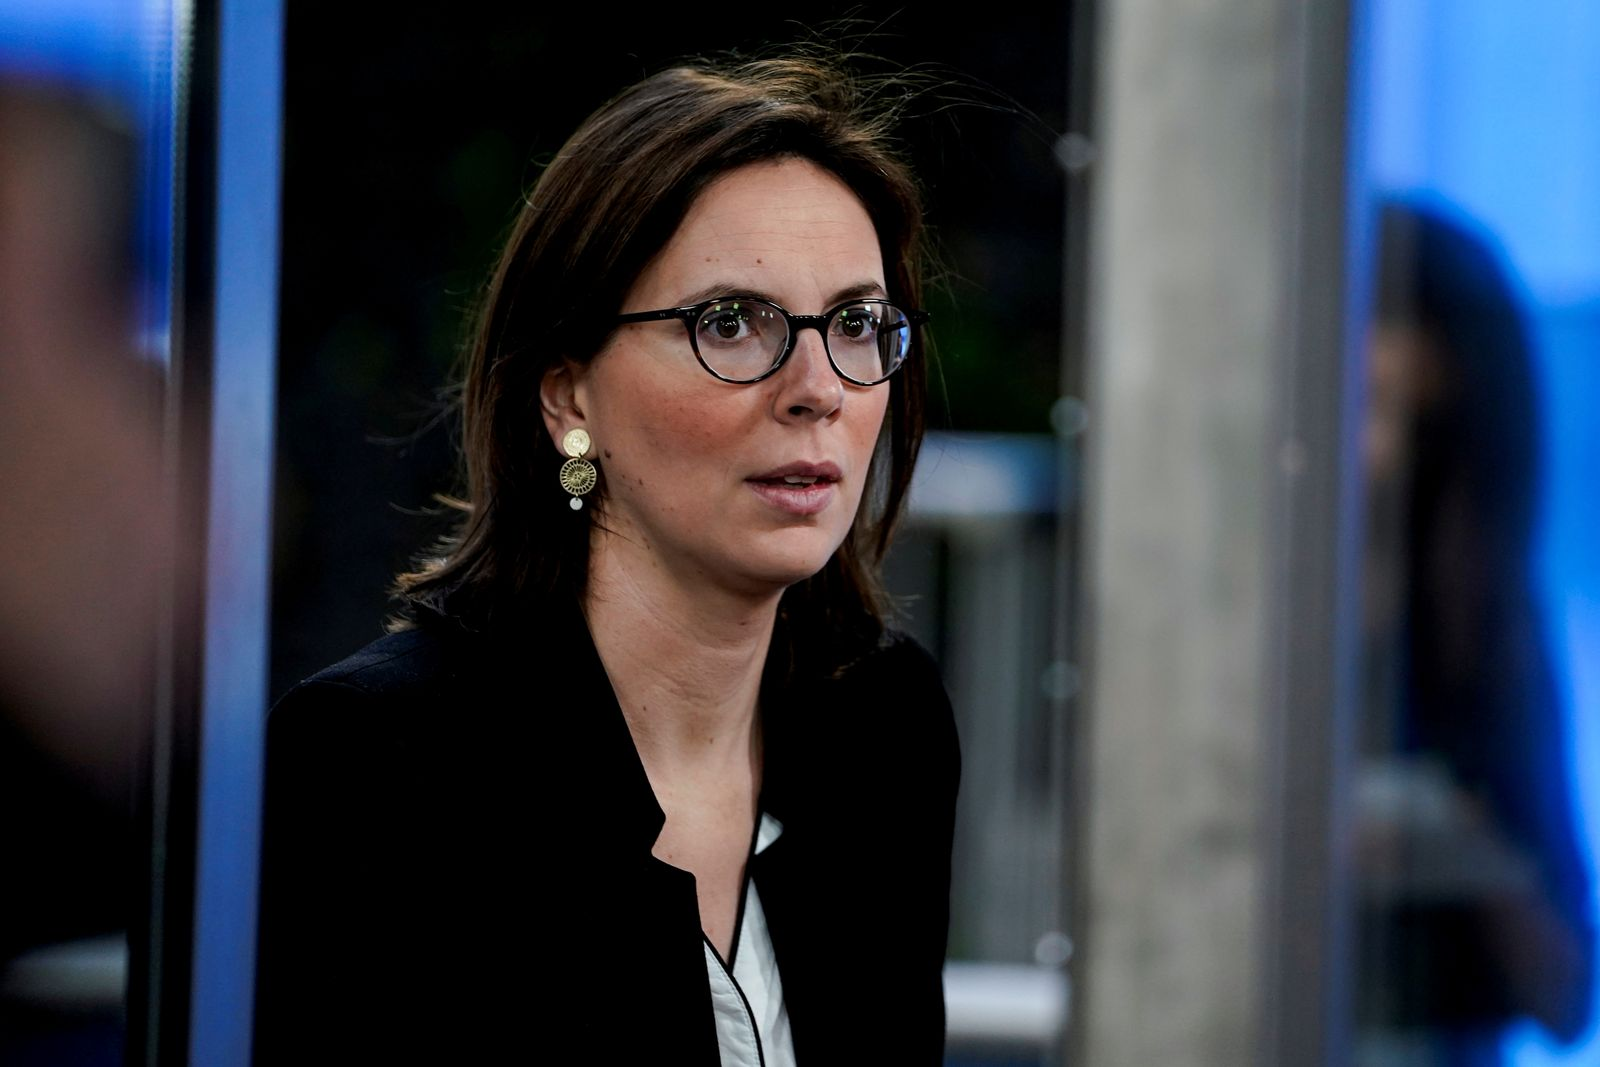 FILE PHOTO: French Junior Minister for European Affairs Amelie de Montchalin arrives at a General Affairs Councilc meeting at the EU headquarters in Brussels